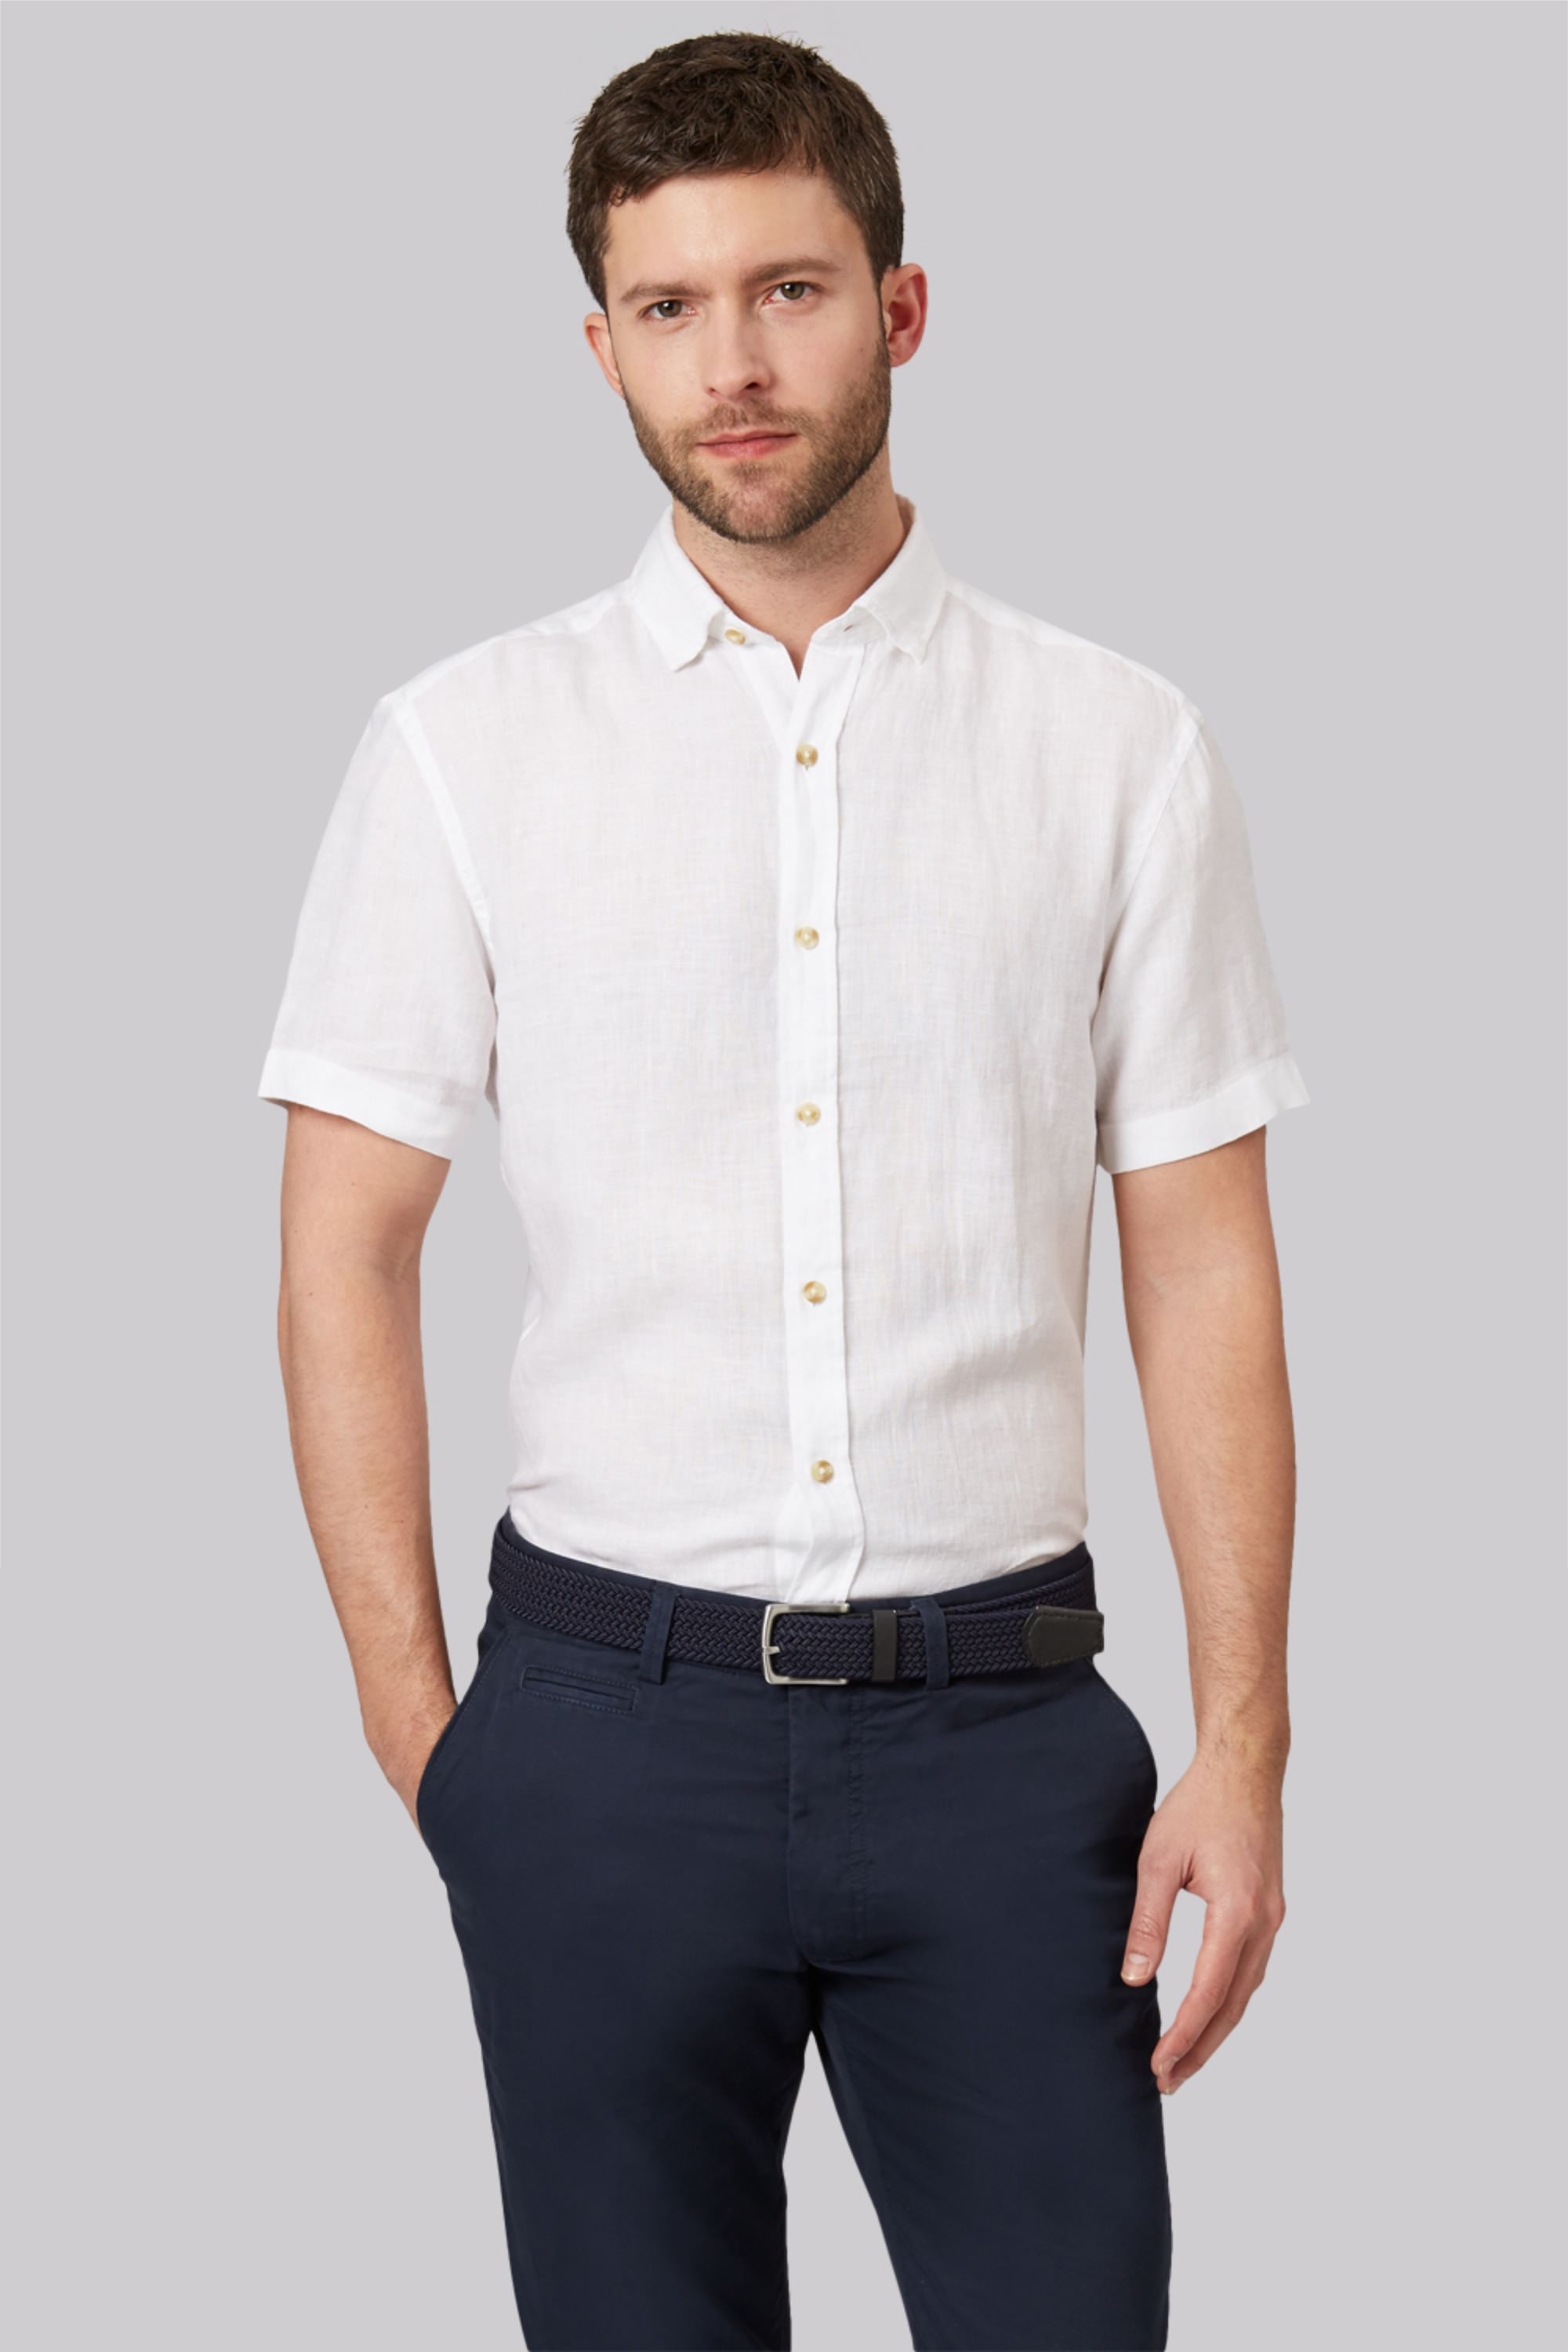 1851 Slim Fit White Short Sleeve Linen Shirt